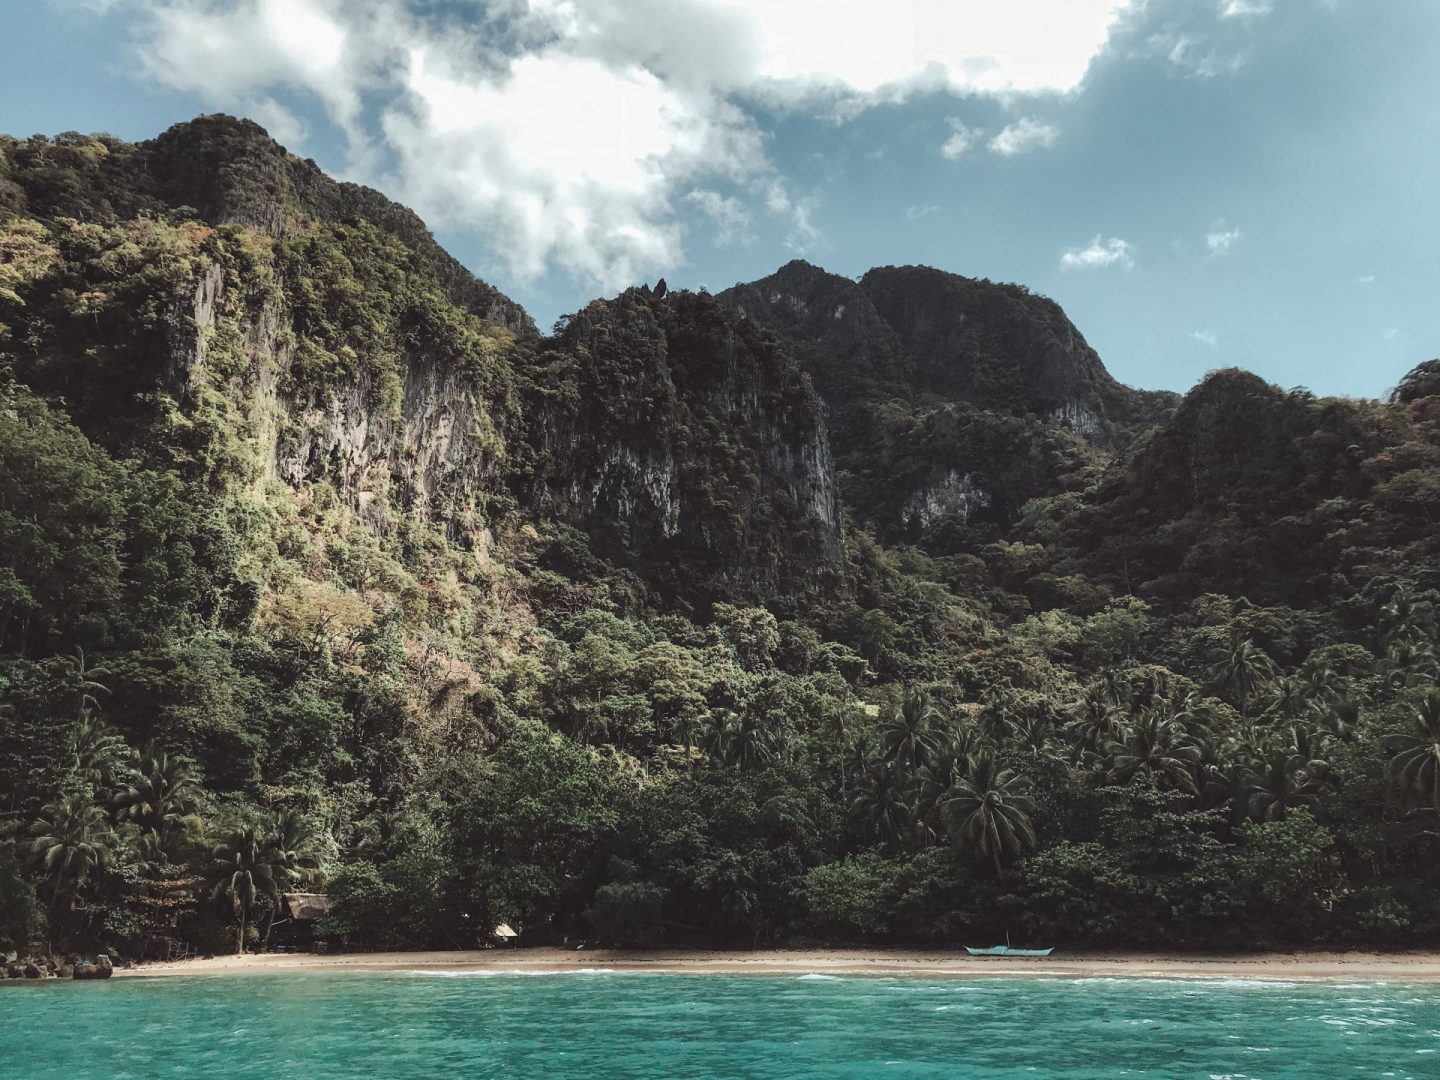 Deserted island tour day 3 - A visit to Cadlao Island